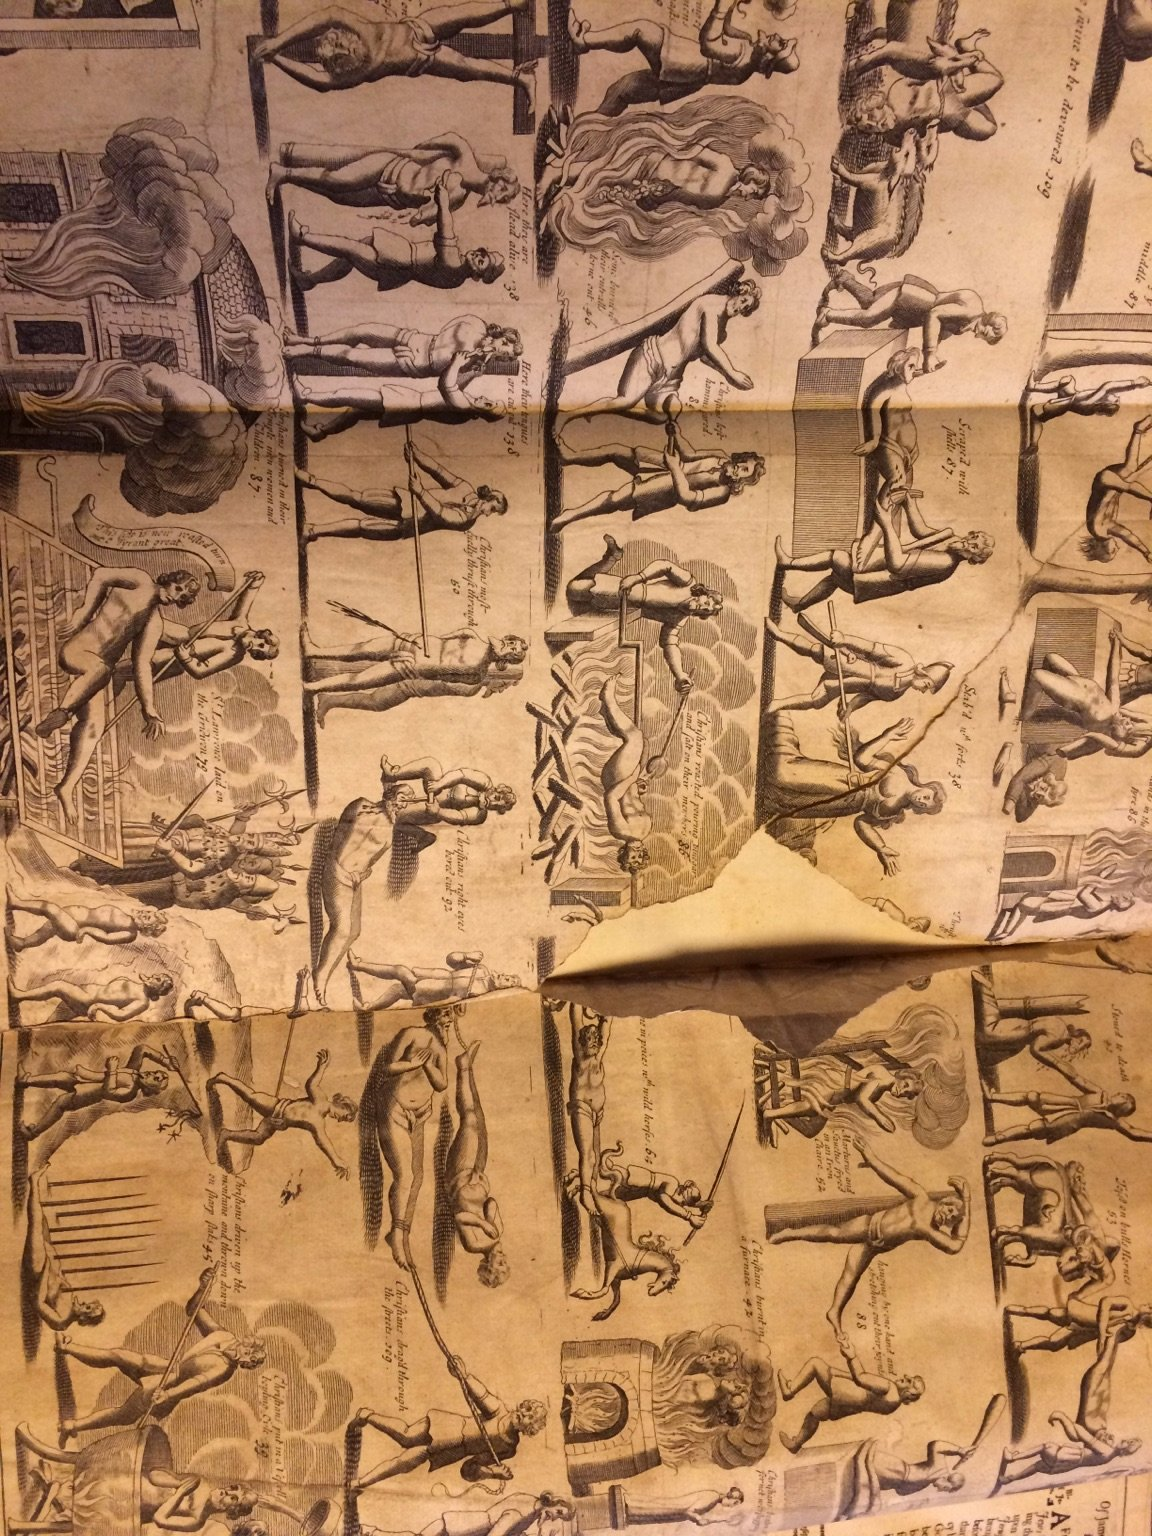 Foldout illustration from an Elizabethan text on Christian martyrs that B. D. showed me in his office. The full text is several volumes long, with each volume over a foot and a half tall, and at least the better part of a foot wide.